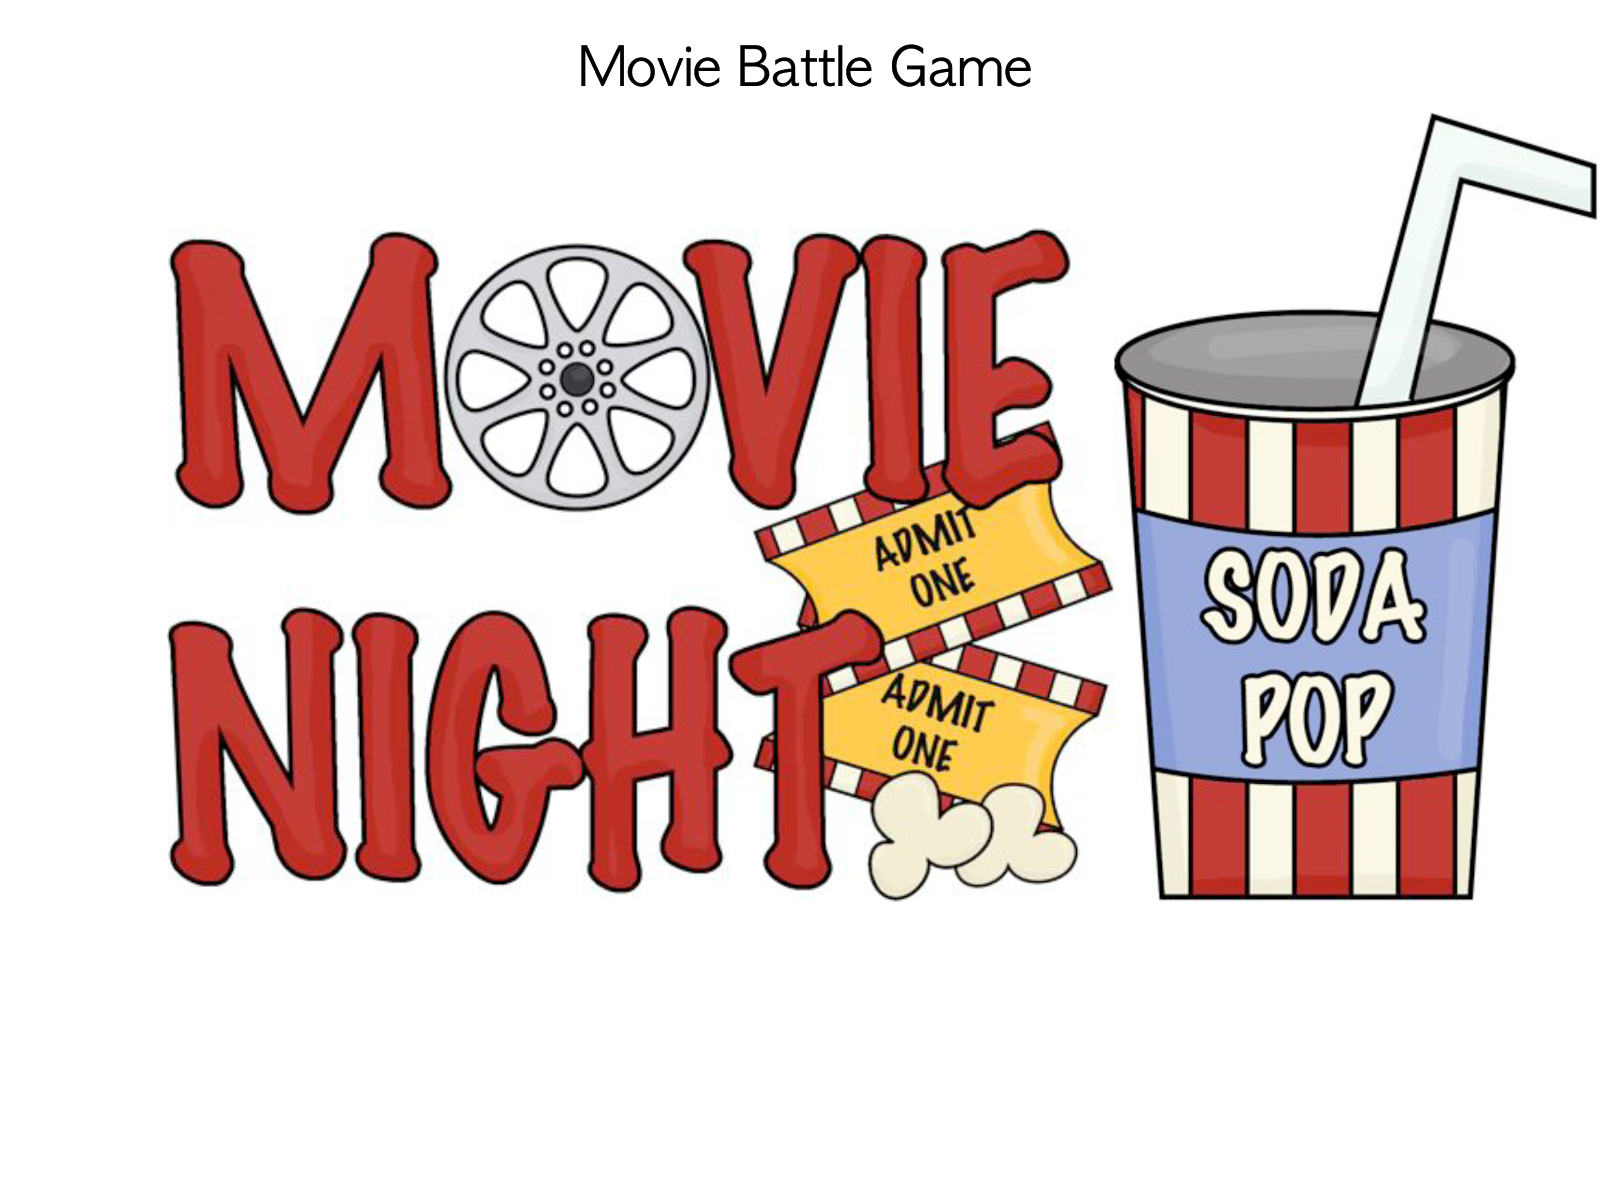 Movie clipart free clip art image image